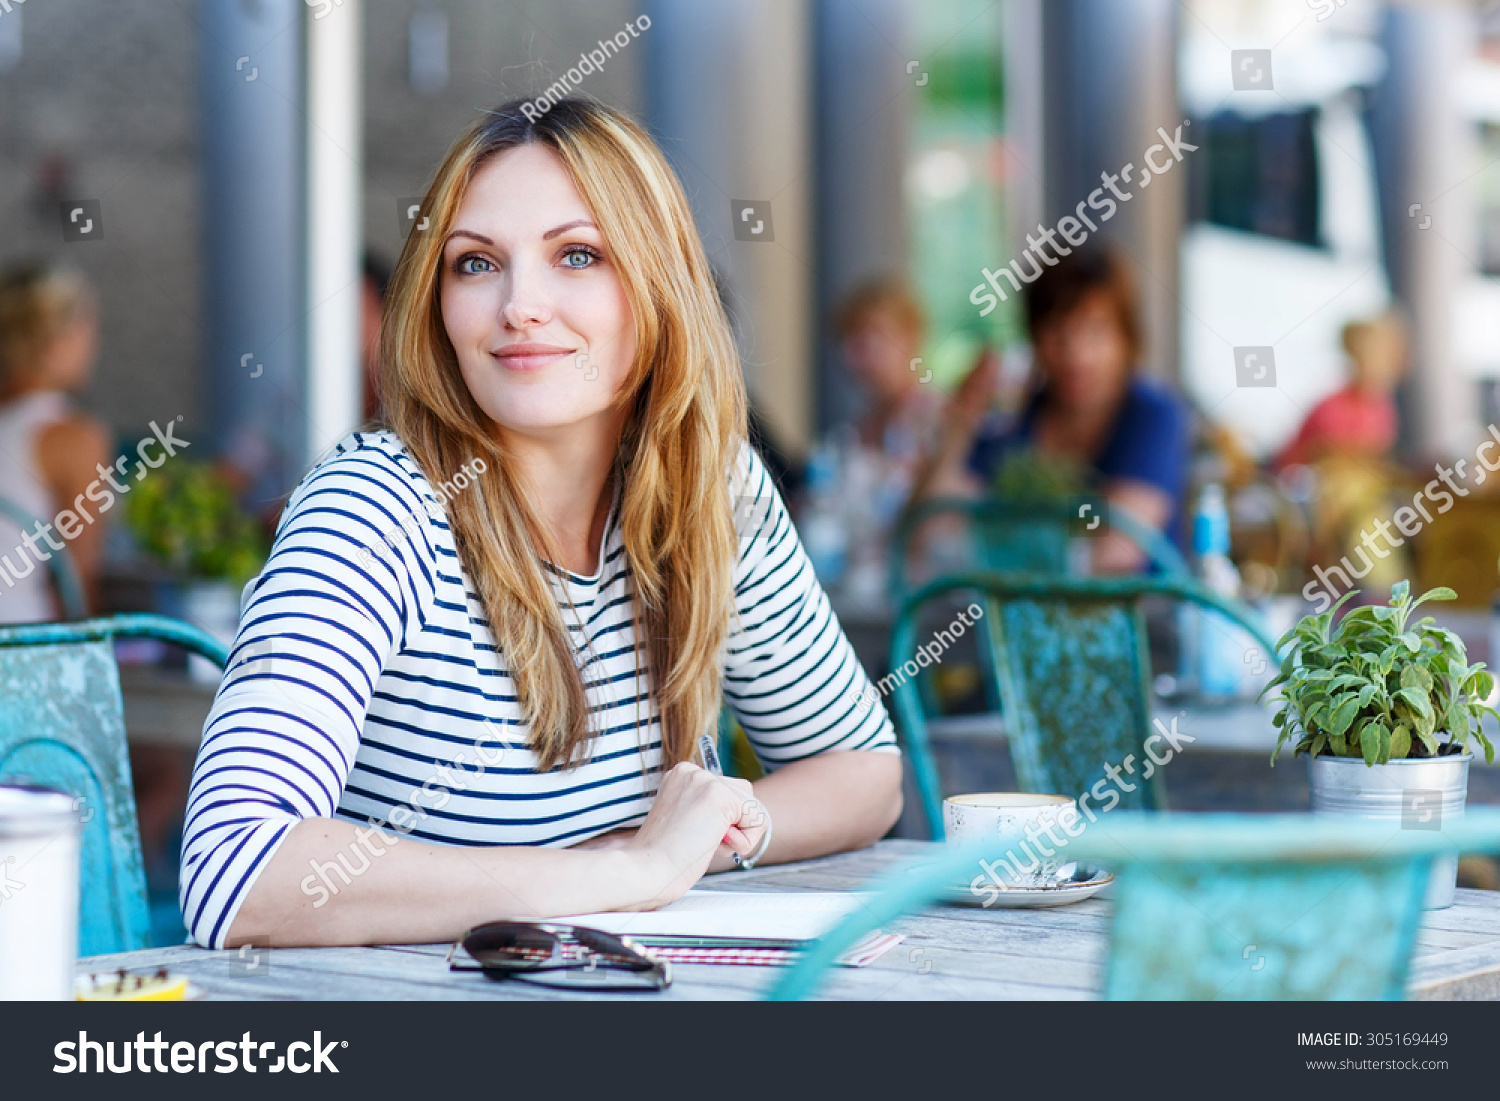 drink coffee 2 essay Open document below is an essay on coffee vs energy drinks from anti essays, your source for research papers, essays, and term paper examples.